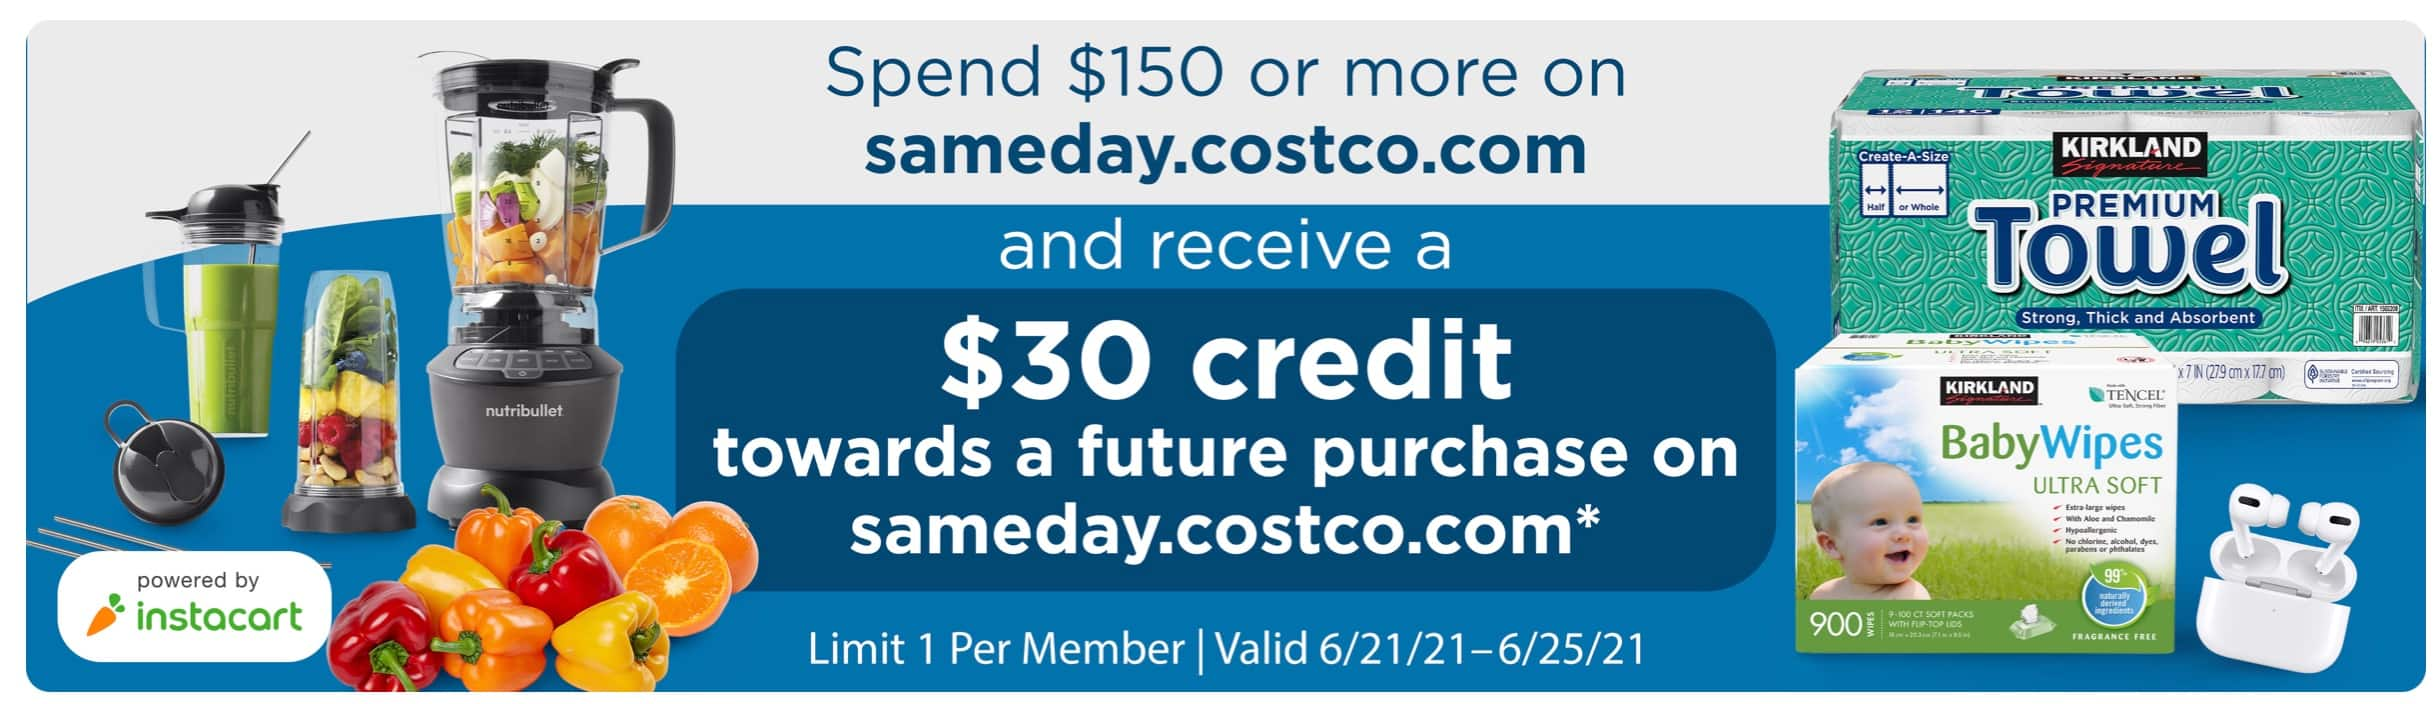 Costco Same Day - $30 credit on $150 spend   AirPods Pro - $201 + $30 credit